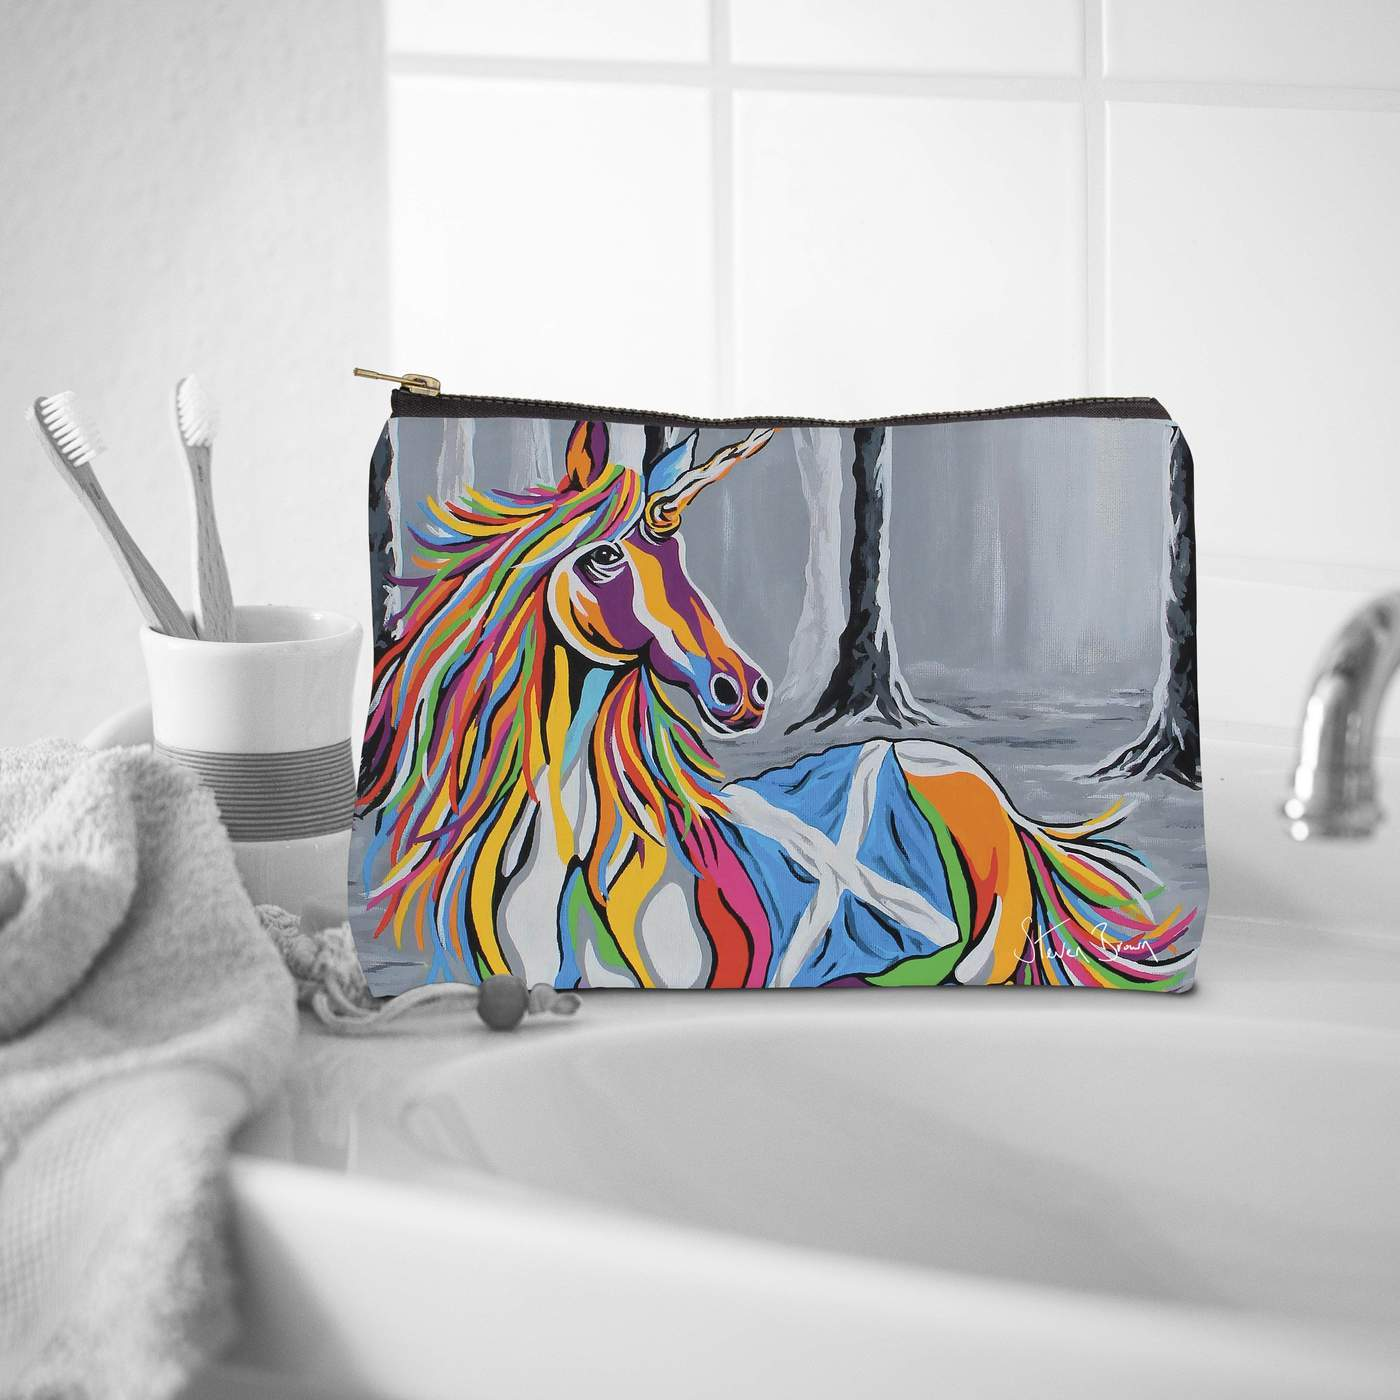 Steven Brown Wash Bag- Travel collection